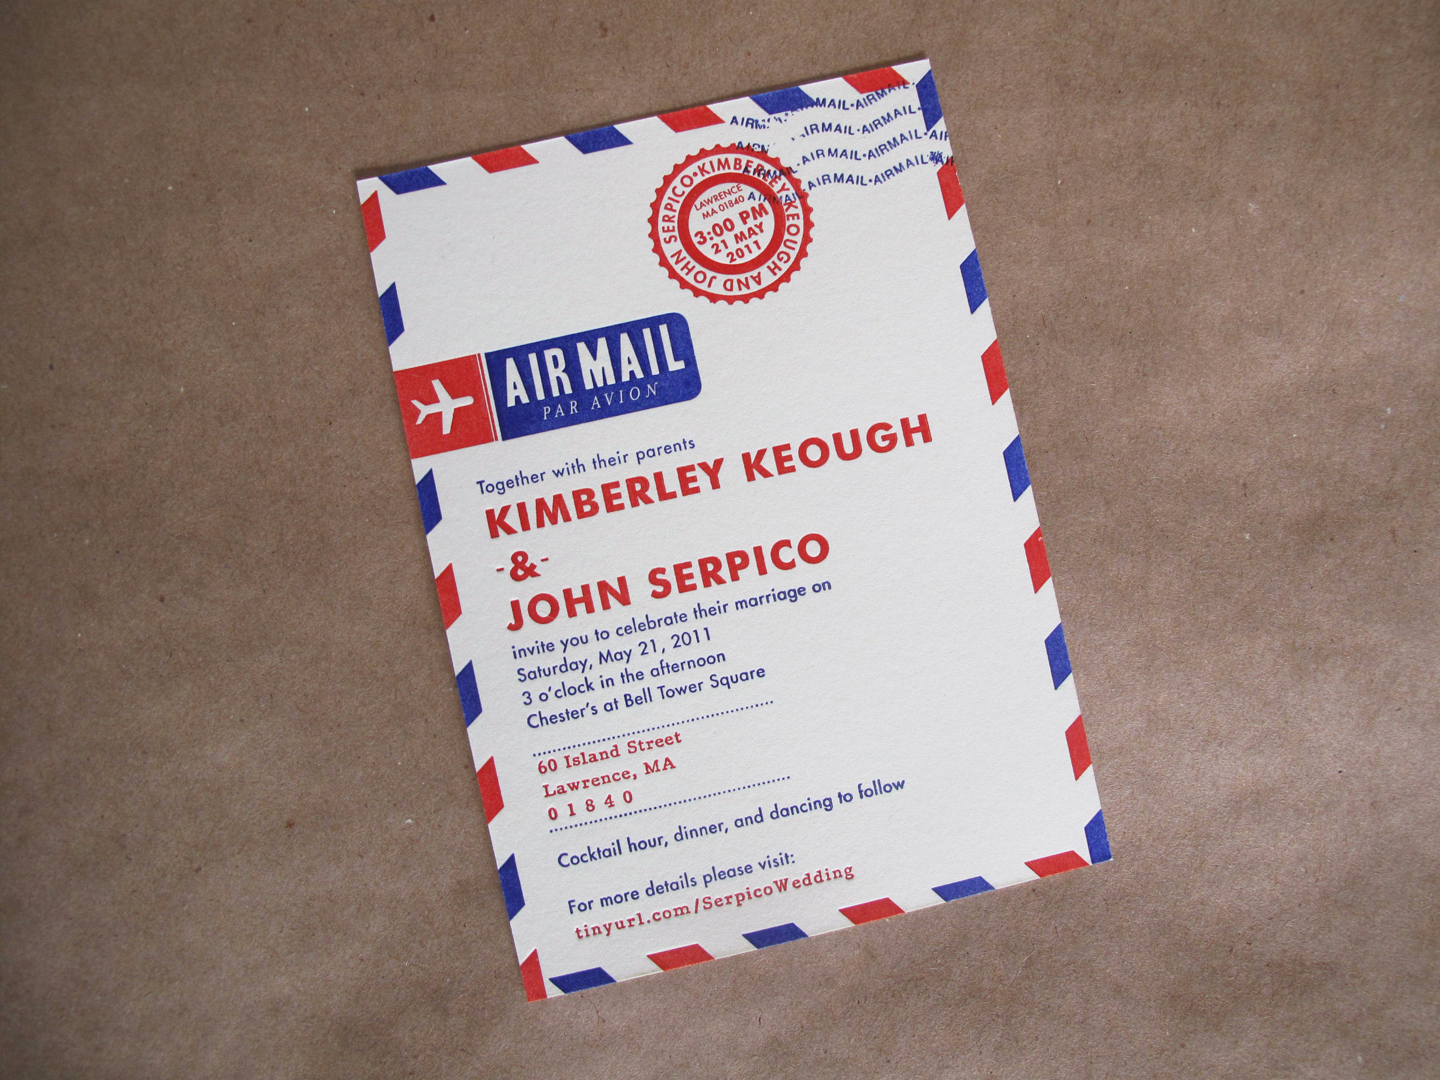 Red White And Blue Wedding Inspiration 4th Of July Weddings Unique Invitations Air Mail 1